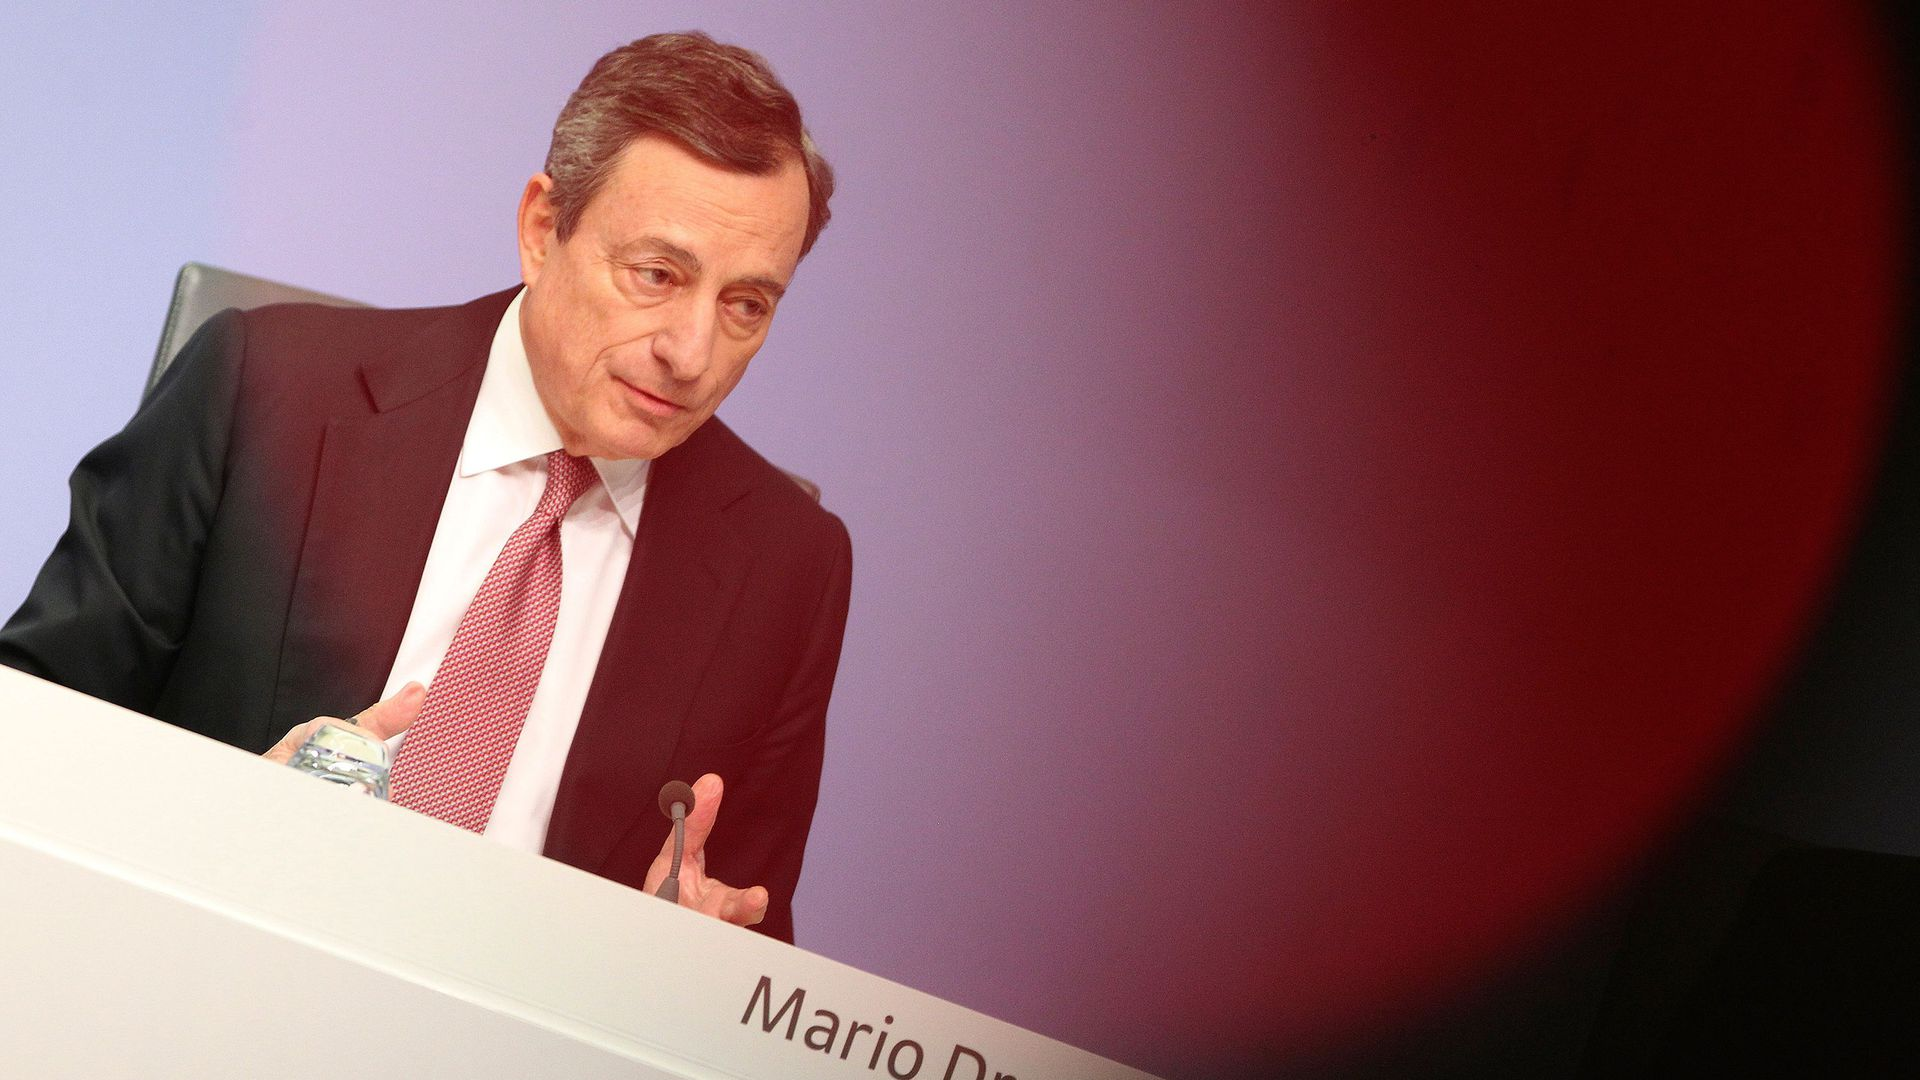 A photo of ECB President Mario Draghi